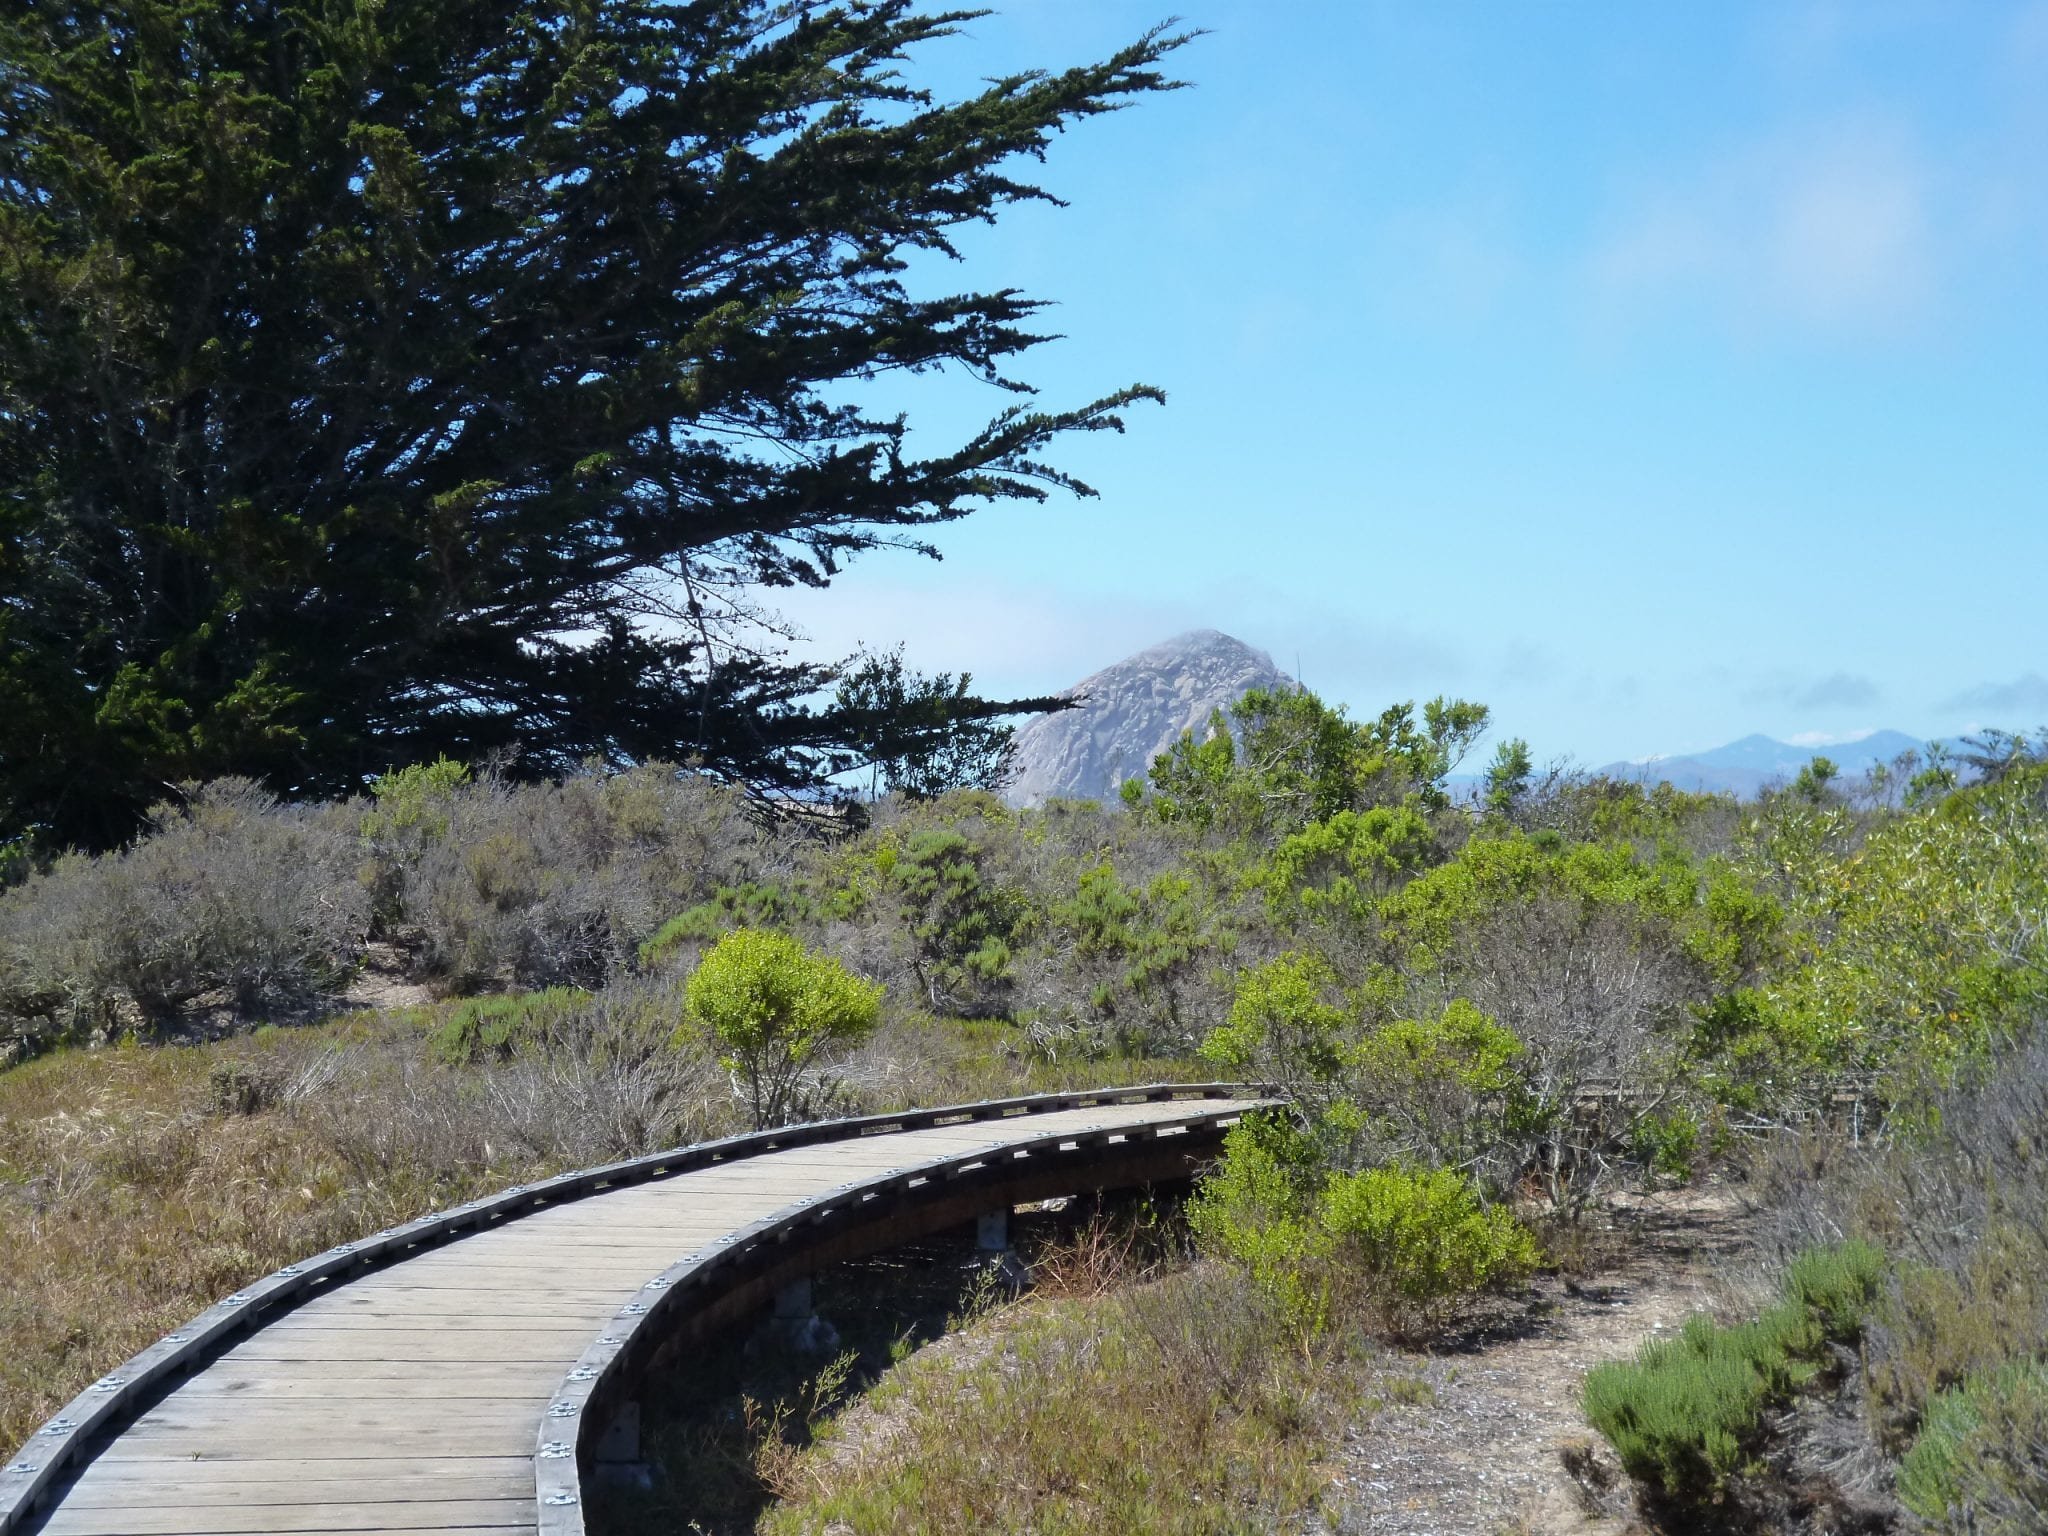 boardwalk at edge of estuary morro bay